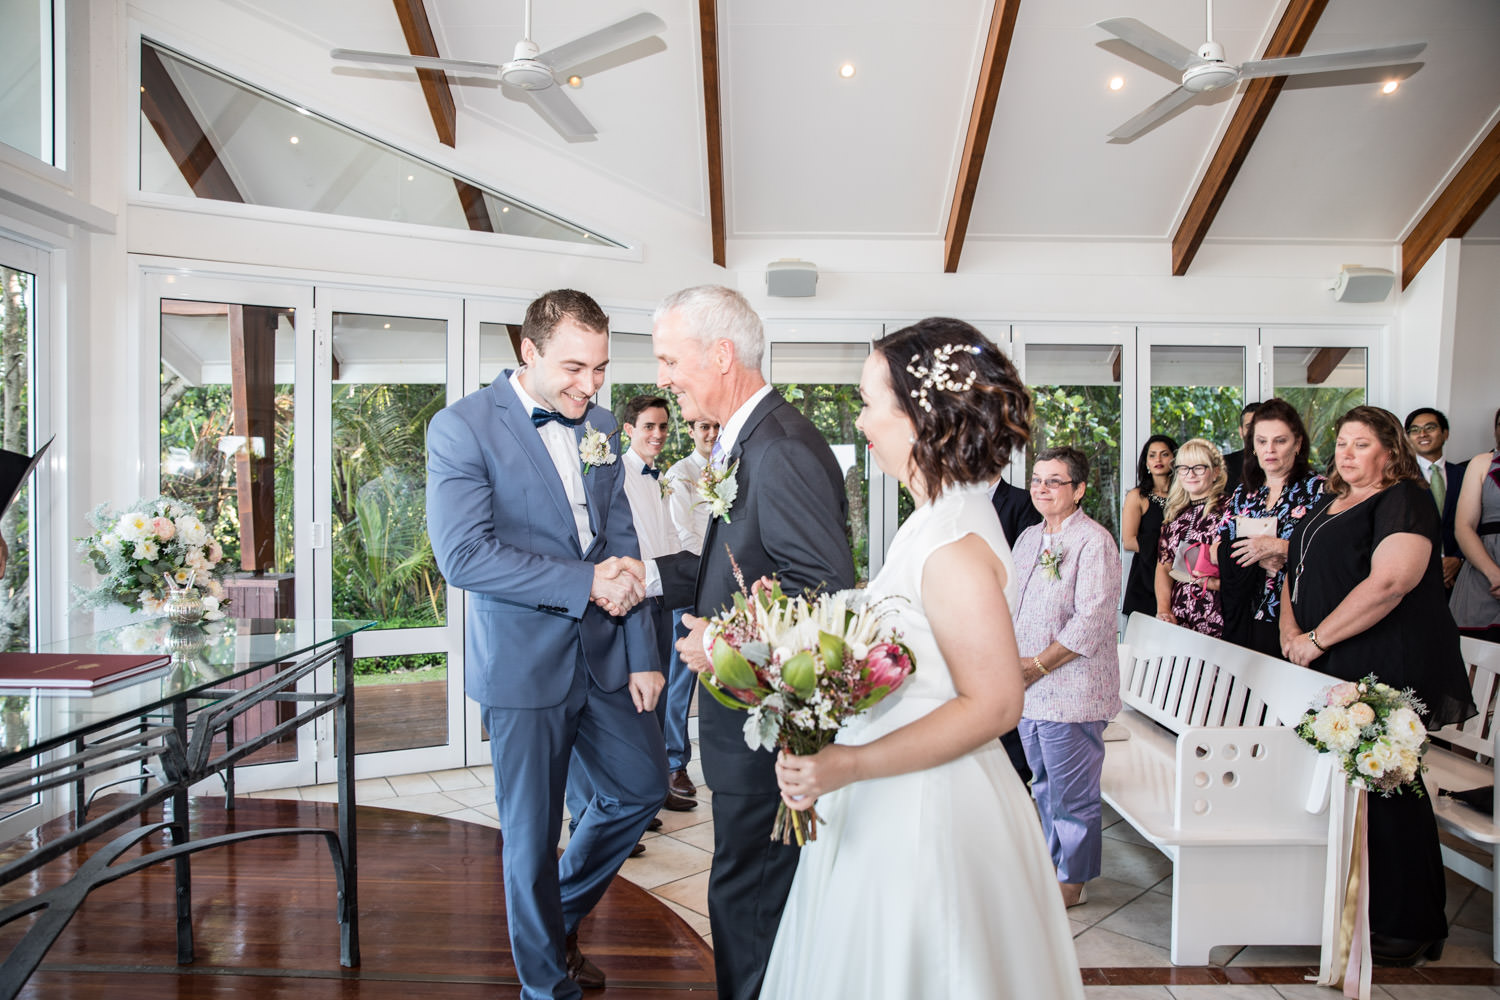 40 Port Douglas Wedding Photographer Catseye Productions Rathmell blog 5S4A6585